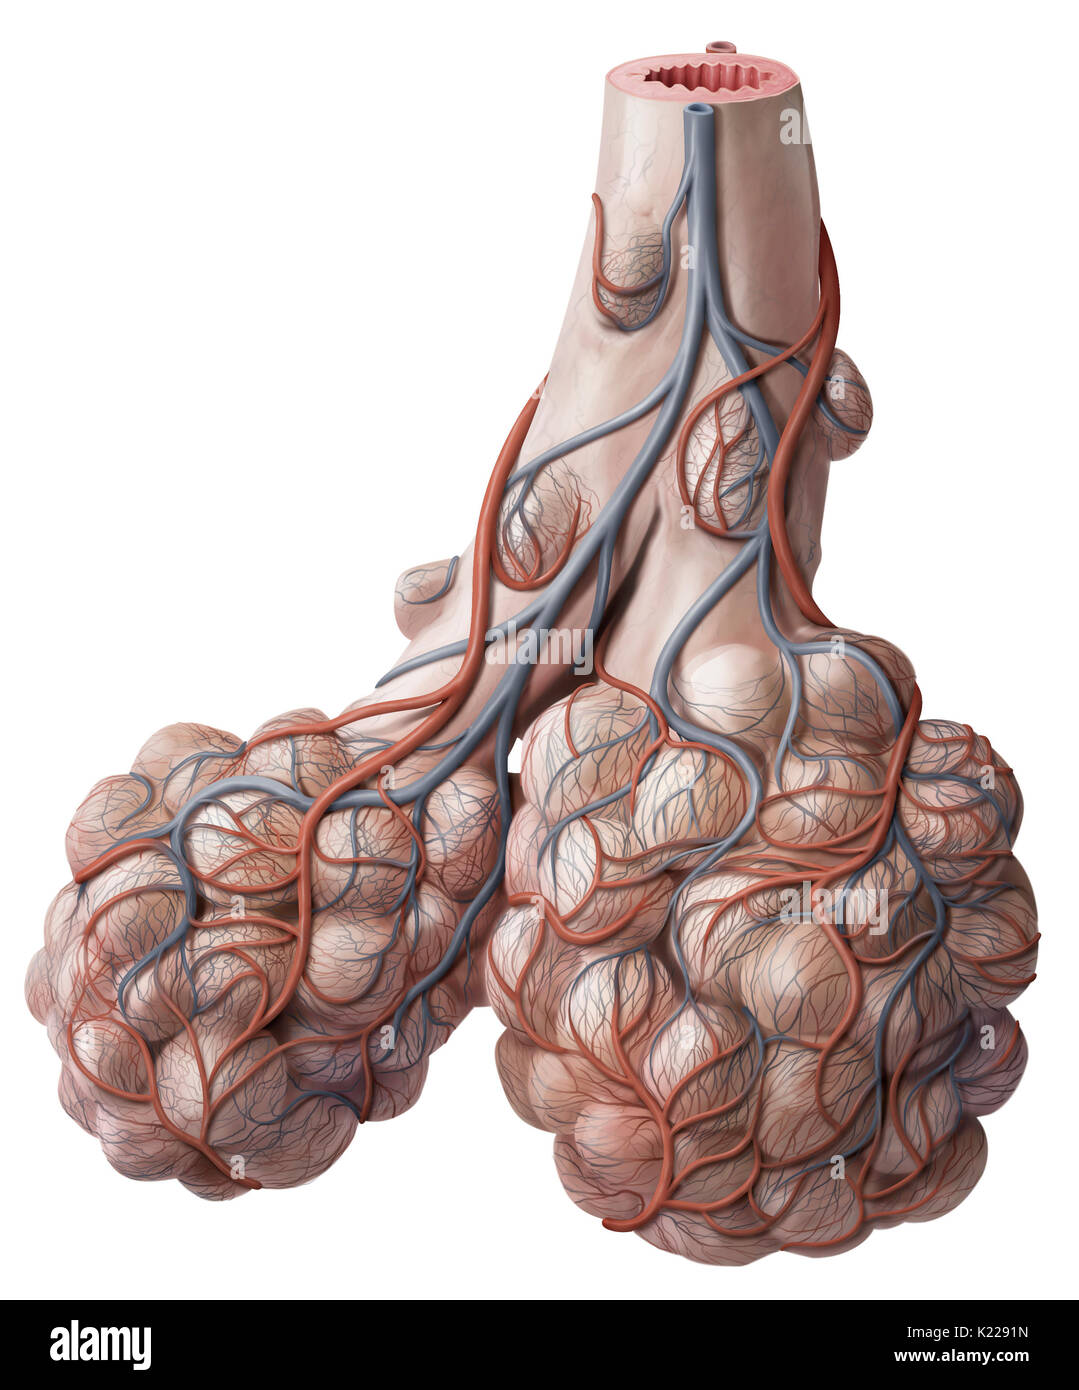 The bronchioles are the narrowest subdivisions of the bronchial tree ...